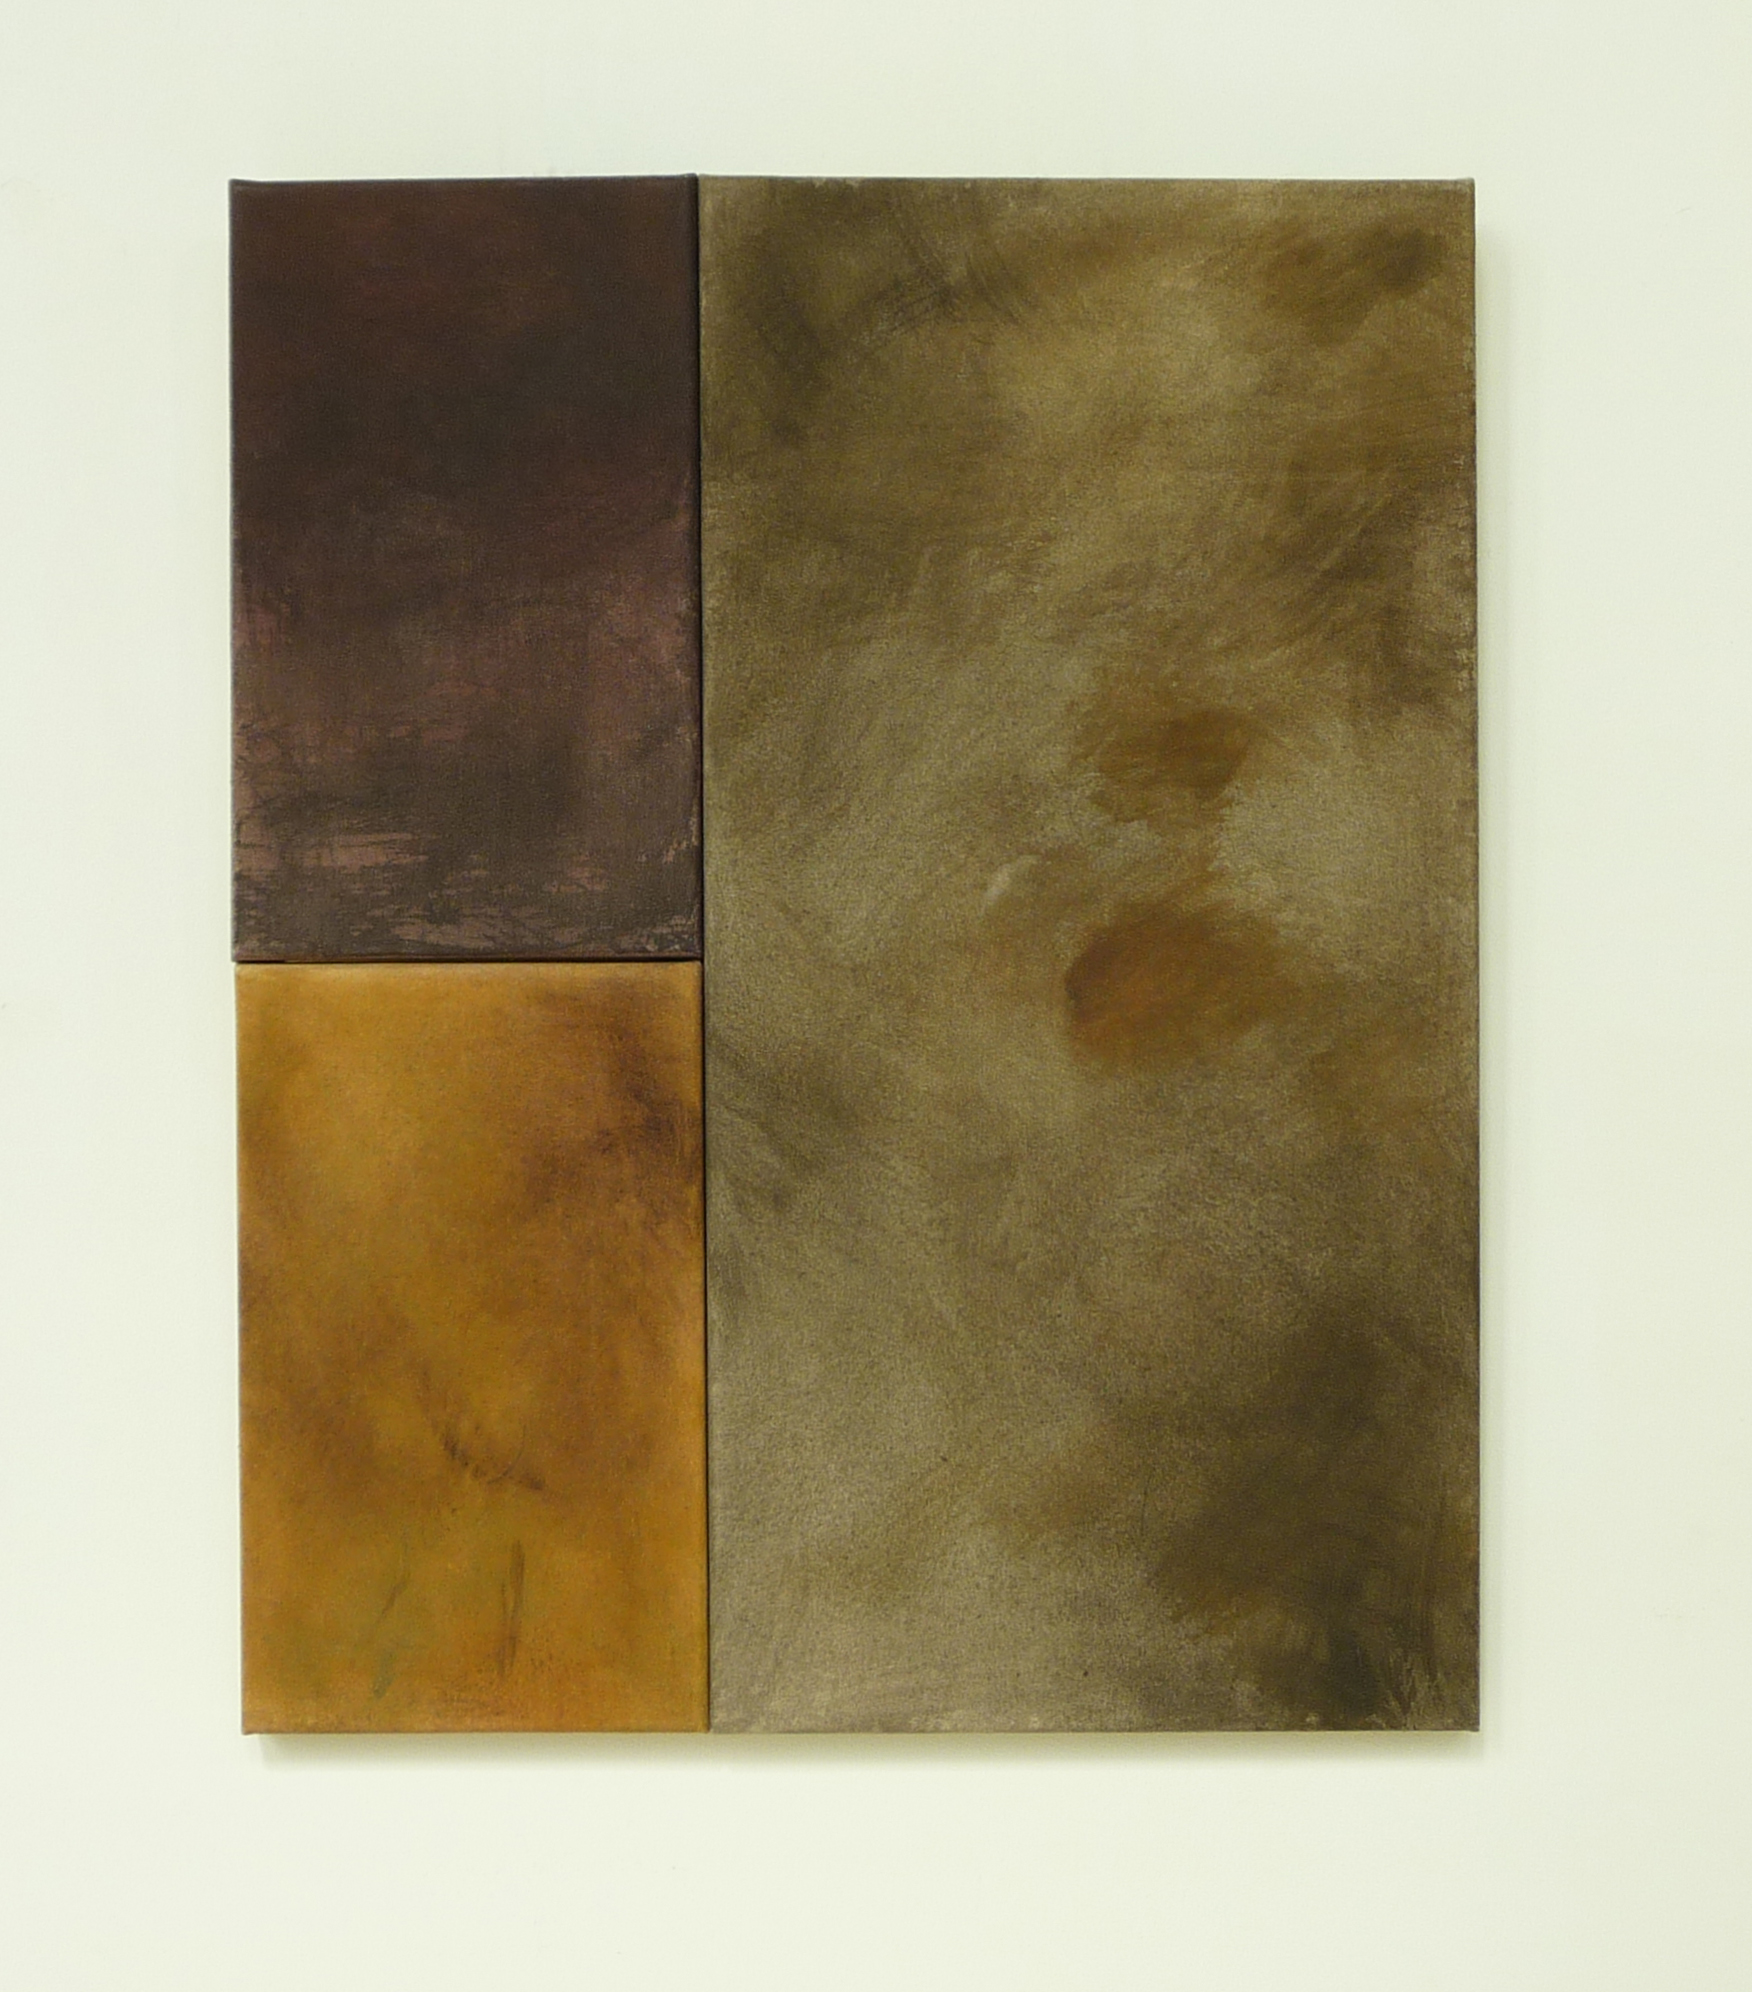 <p><strong>Colours of Scotland 1                 560 Euro</strong><br />Punic wax on canvas, 2x  18x30 cm and 30x60 cm</p>